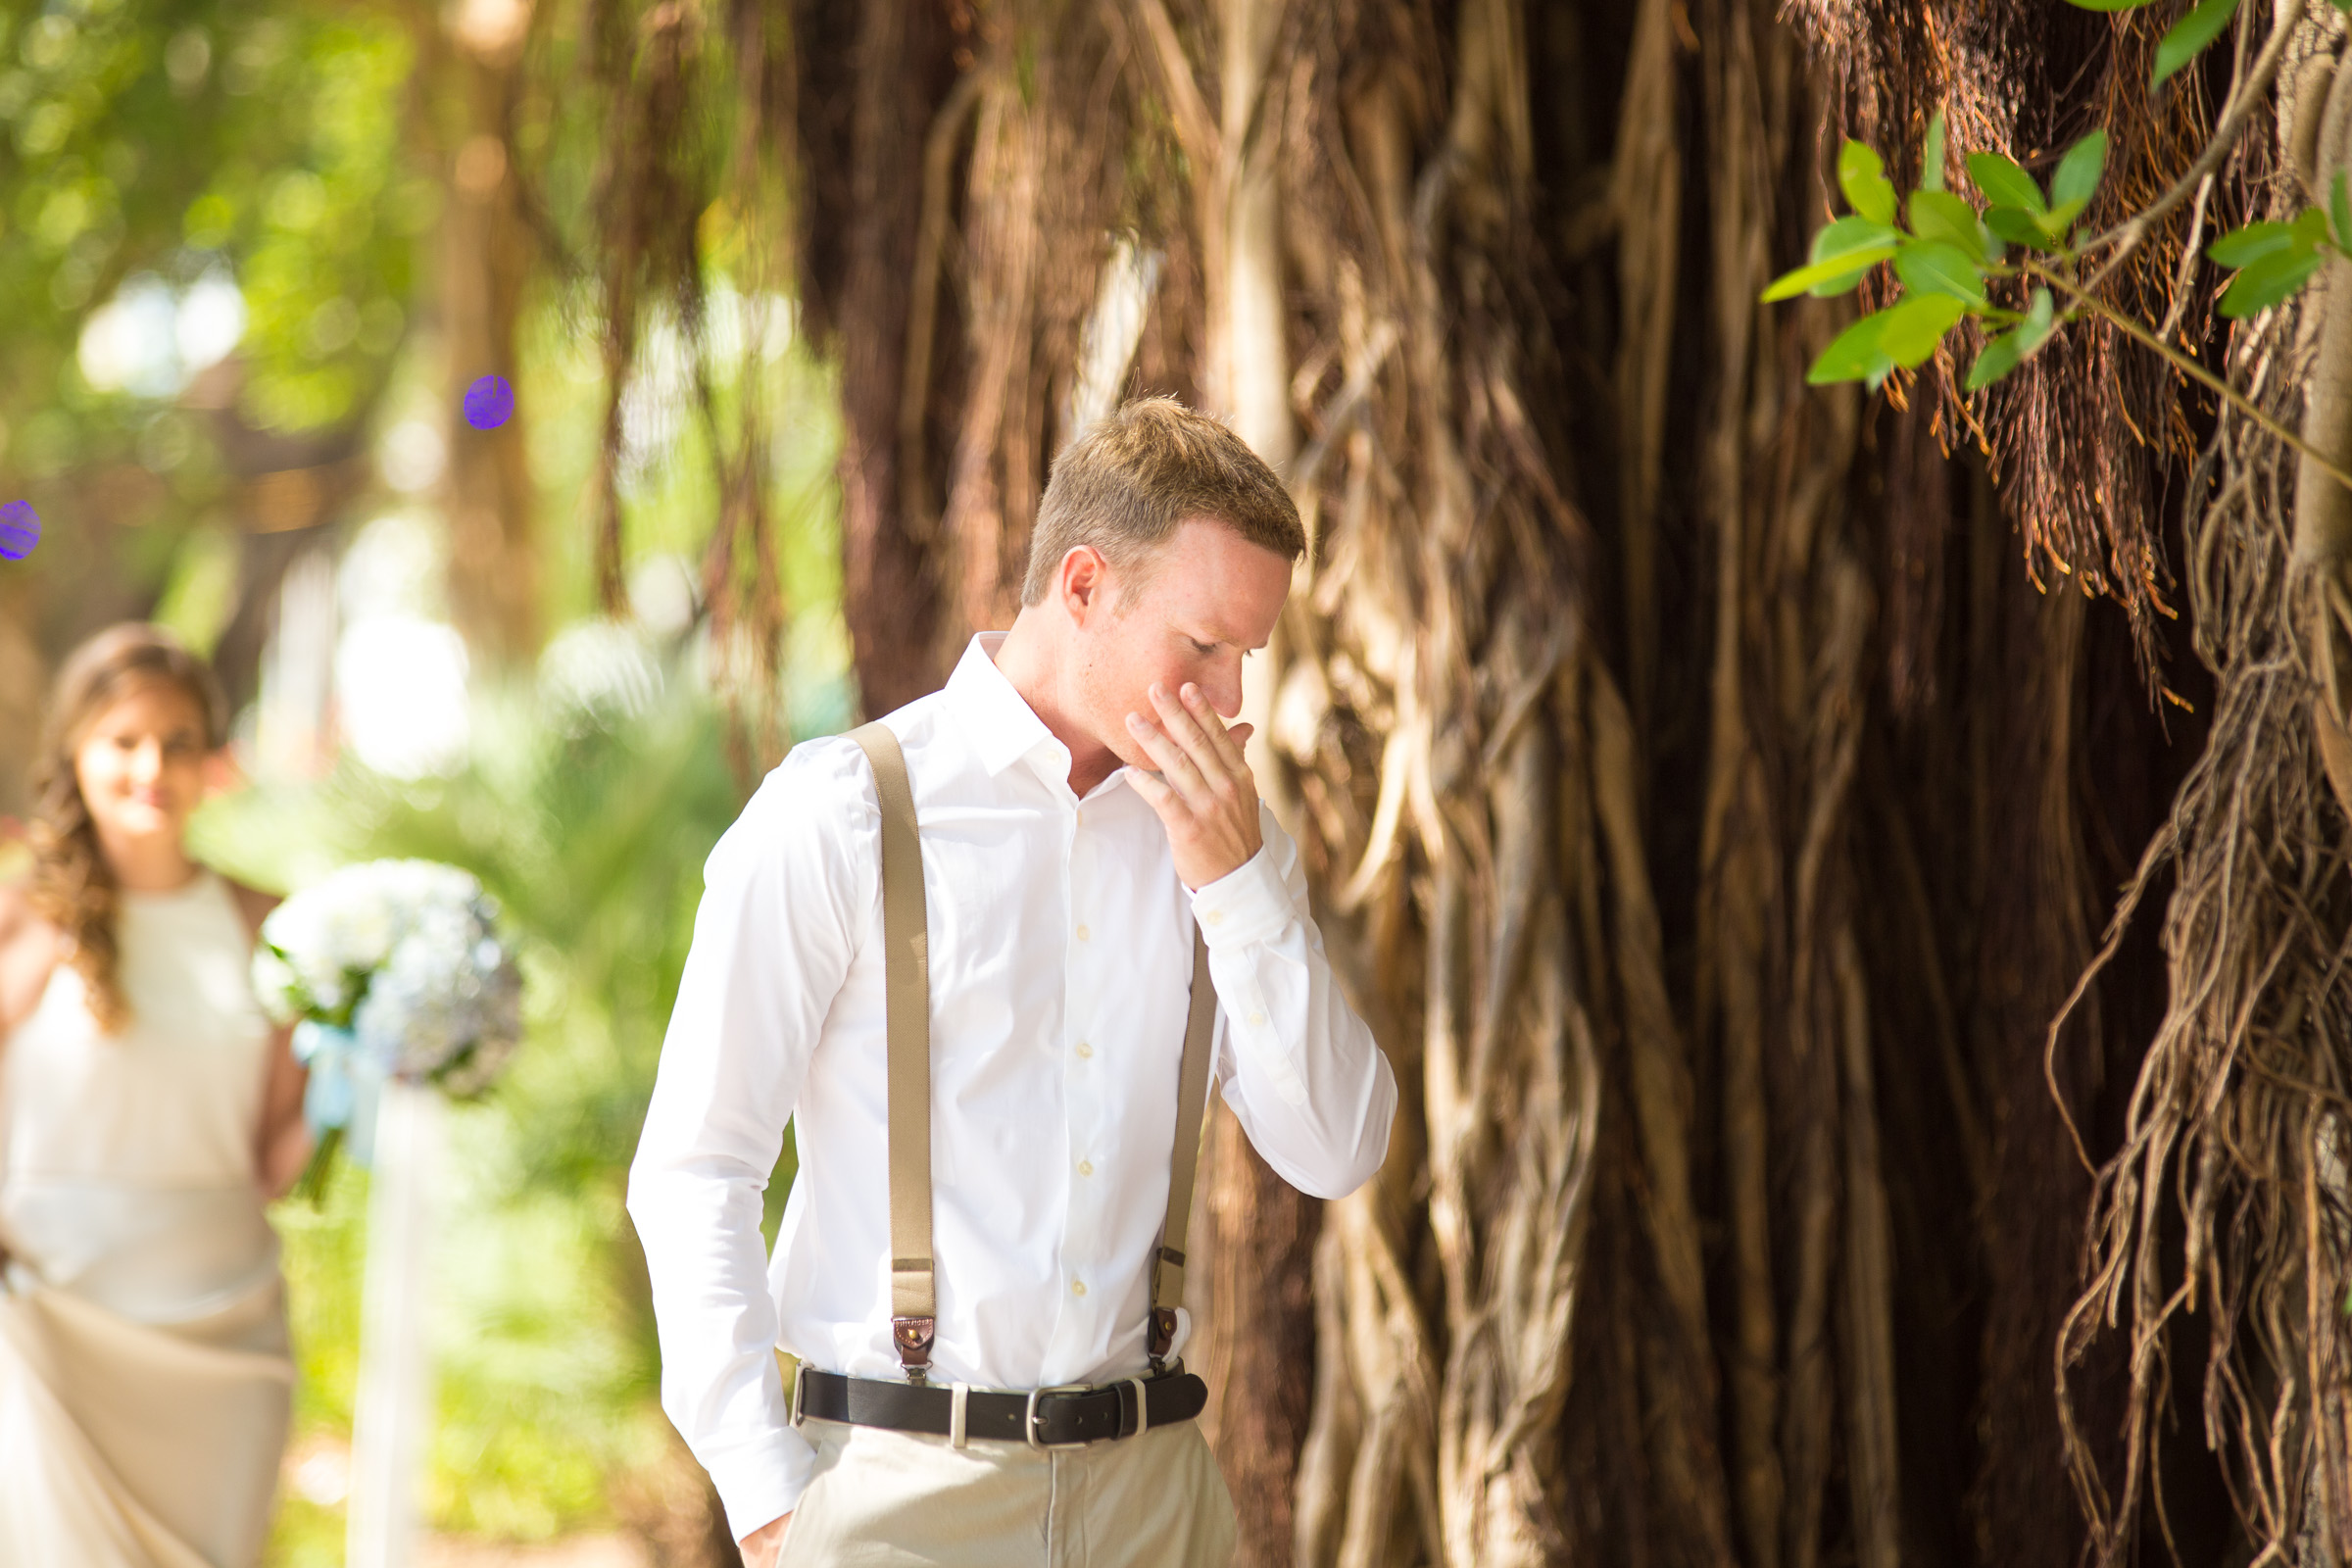 Groom-anticipating-first-look-photos-during-key-west-wedding.jpg